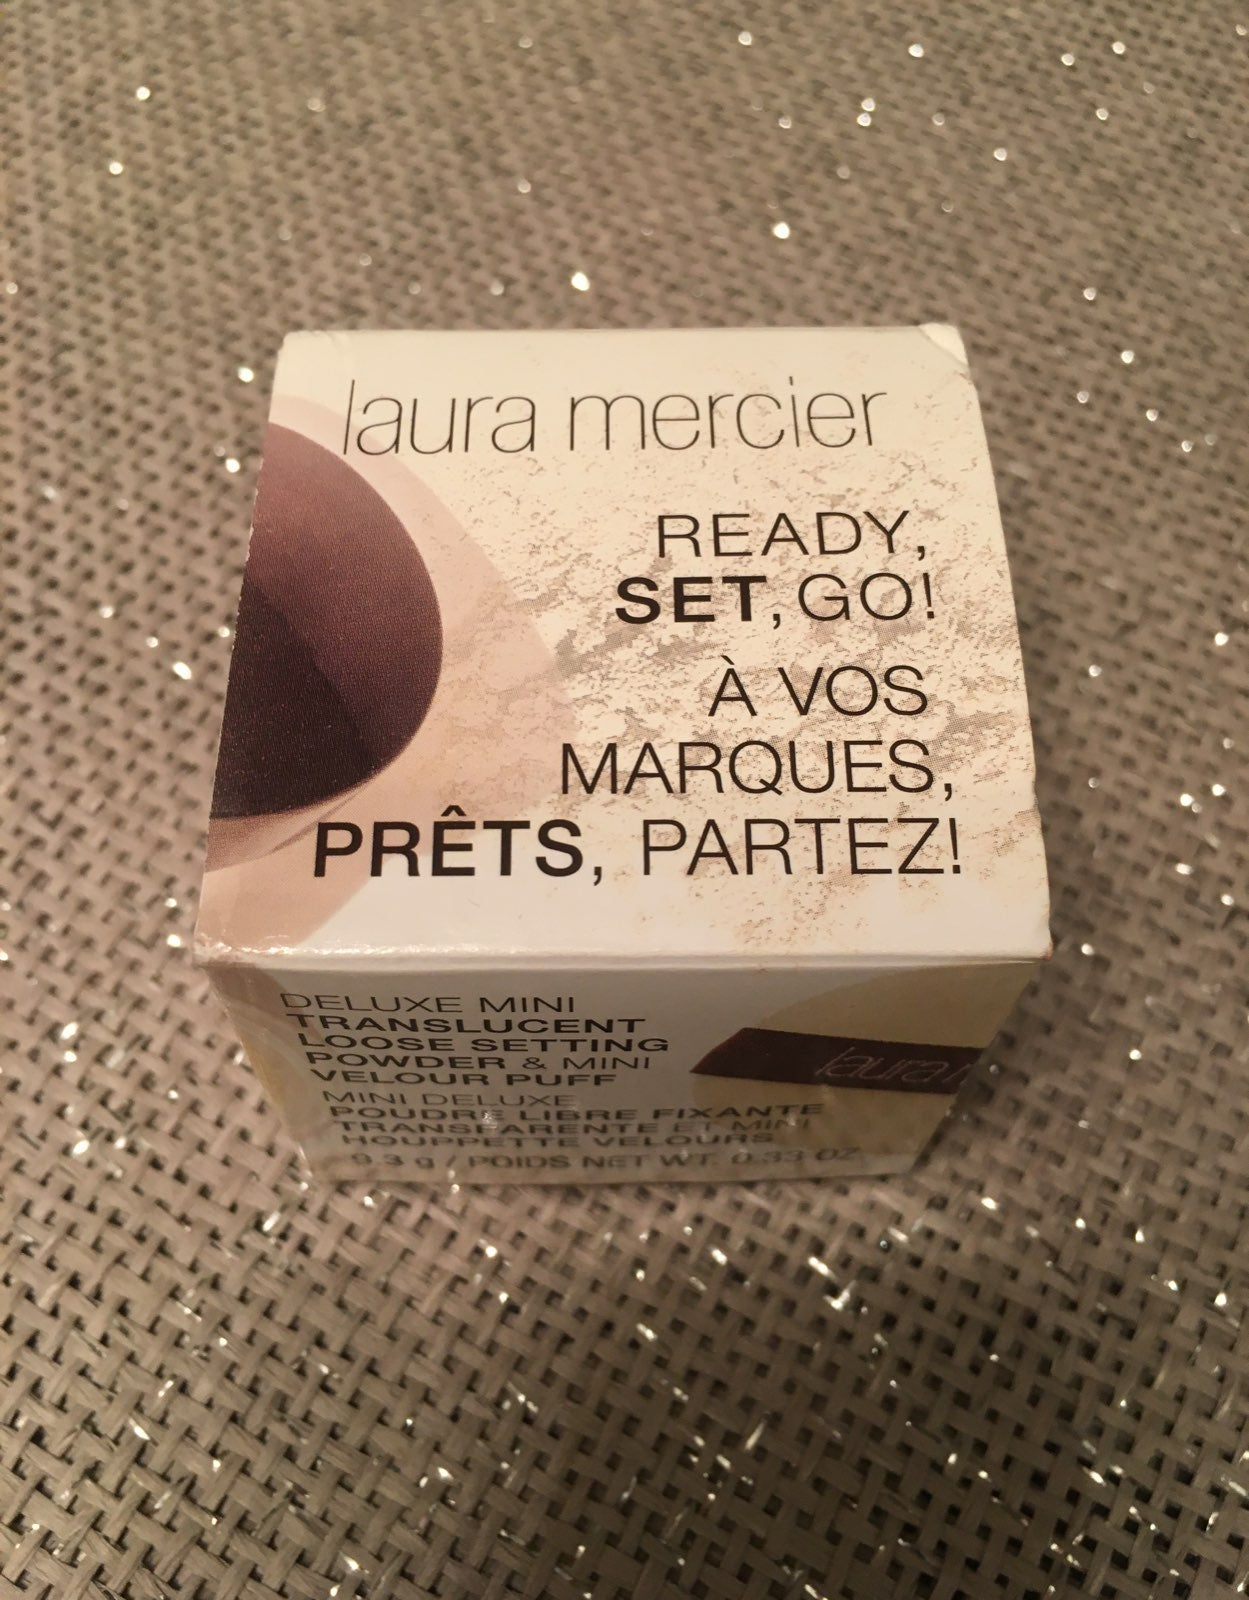 laura mercier mini translucent powder